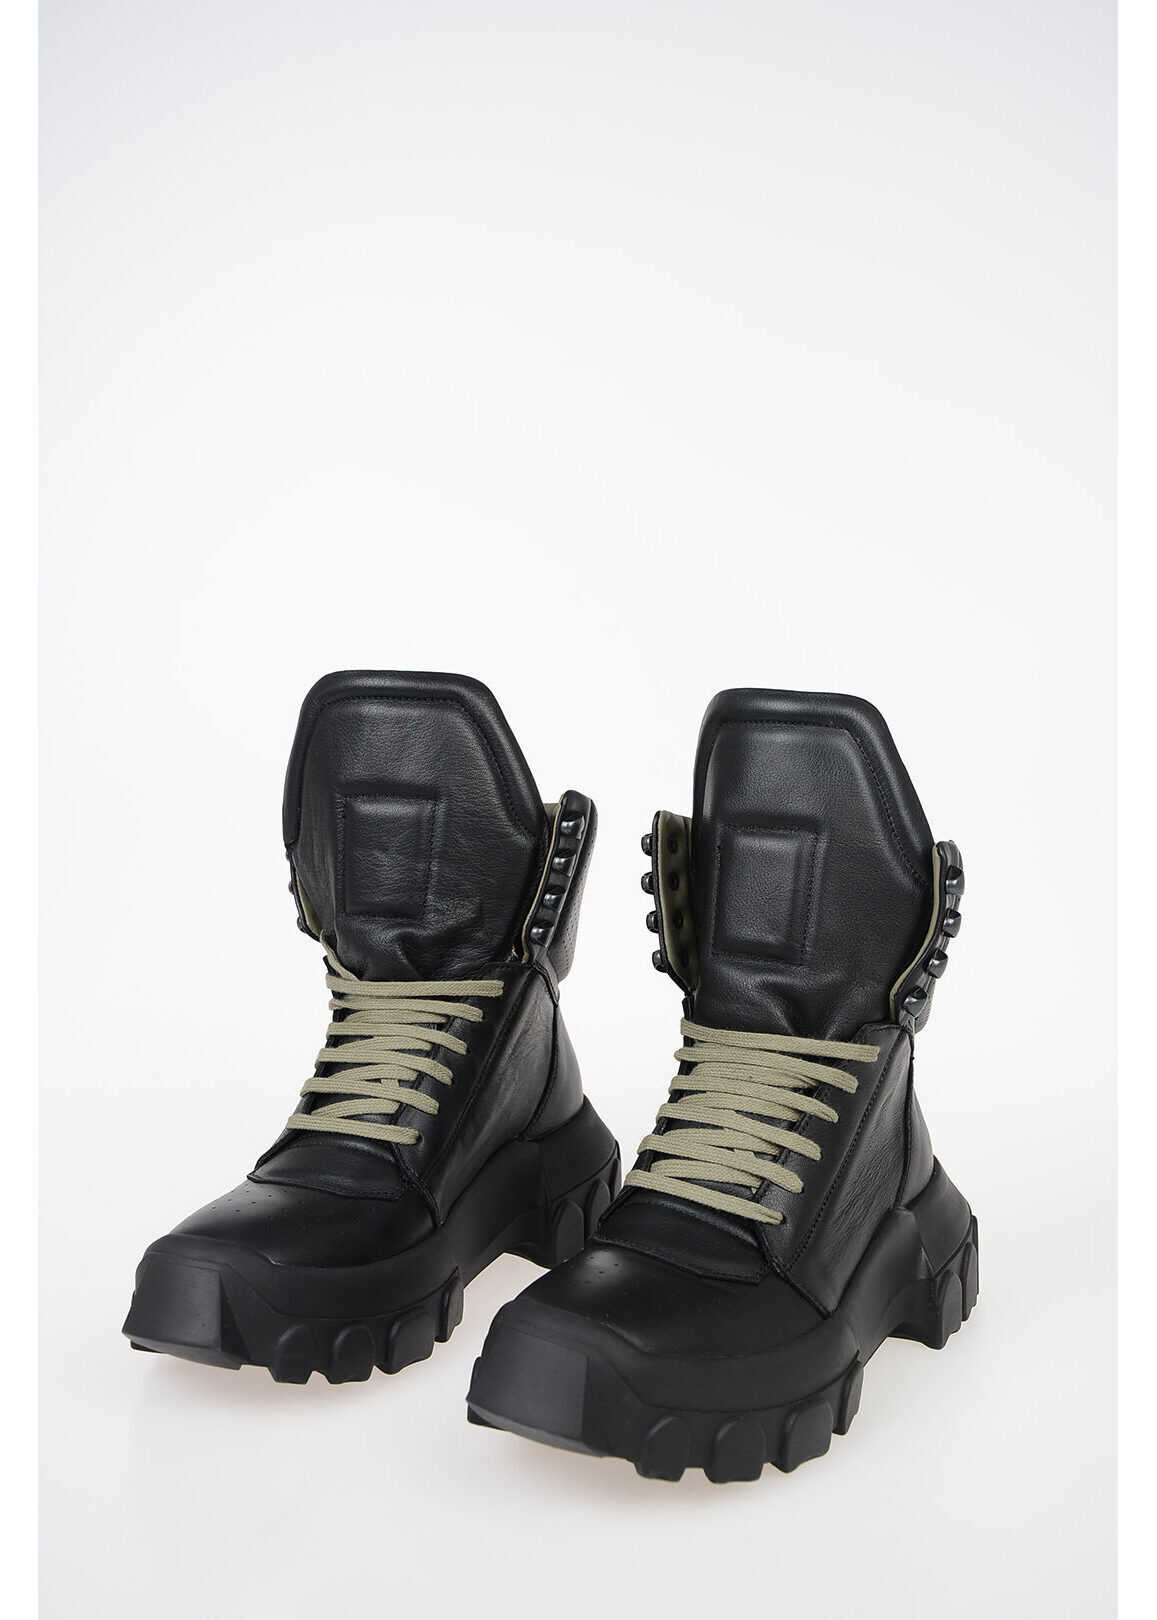 Rick Owens Leather HIKING Ankle Boots BLACK